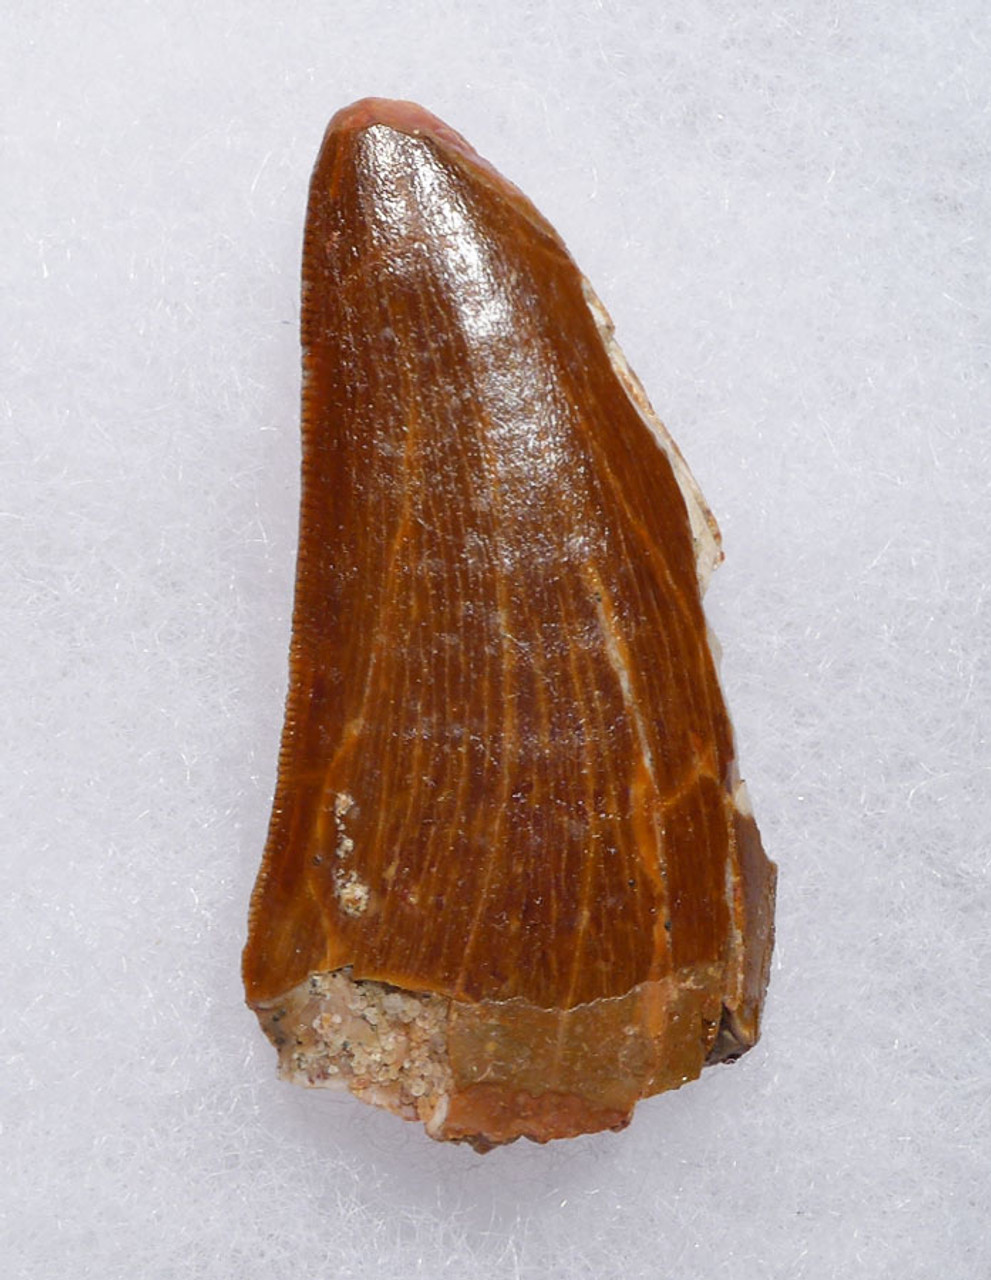 AFFORDABLE CARCHARODONTOSAURUS DINOSAUR TOOTH WITH SERRATIONS AND FEEDING WEAR  *DT2-111